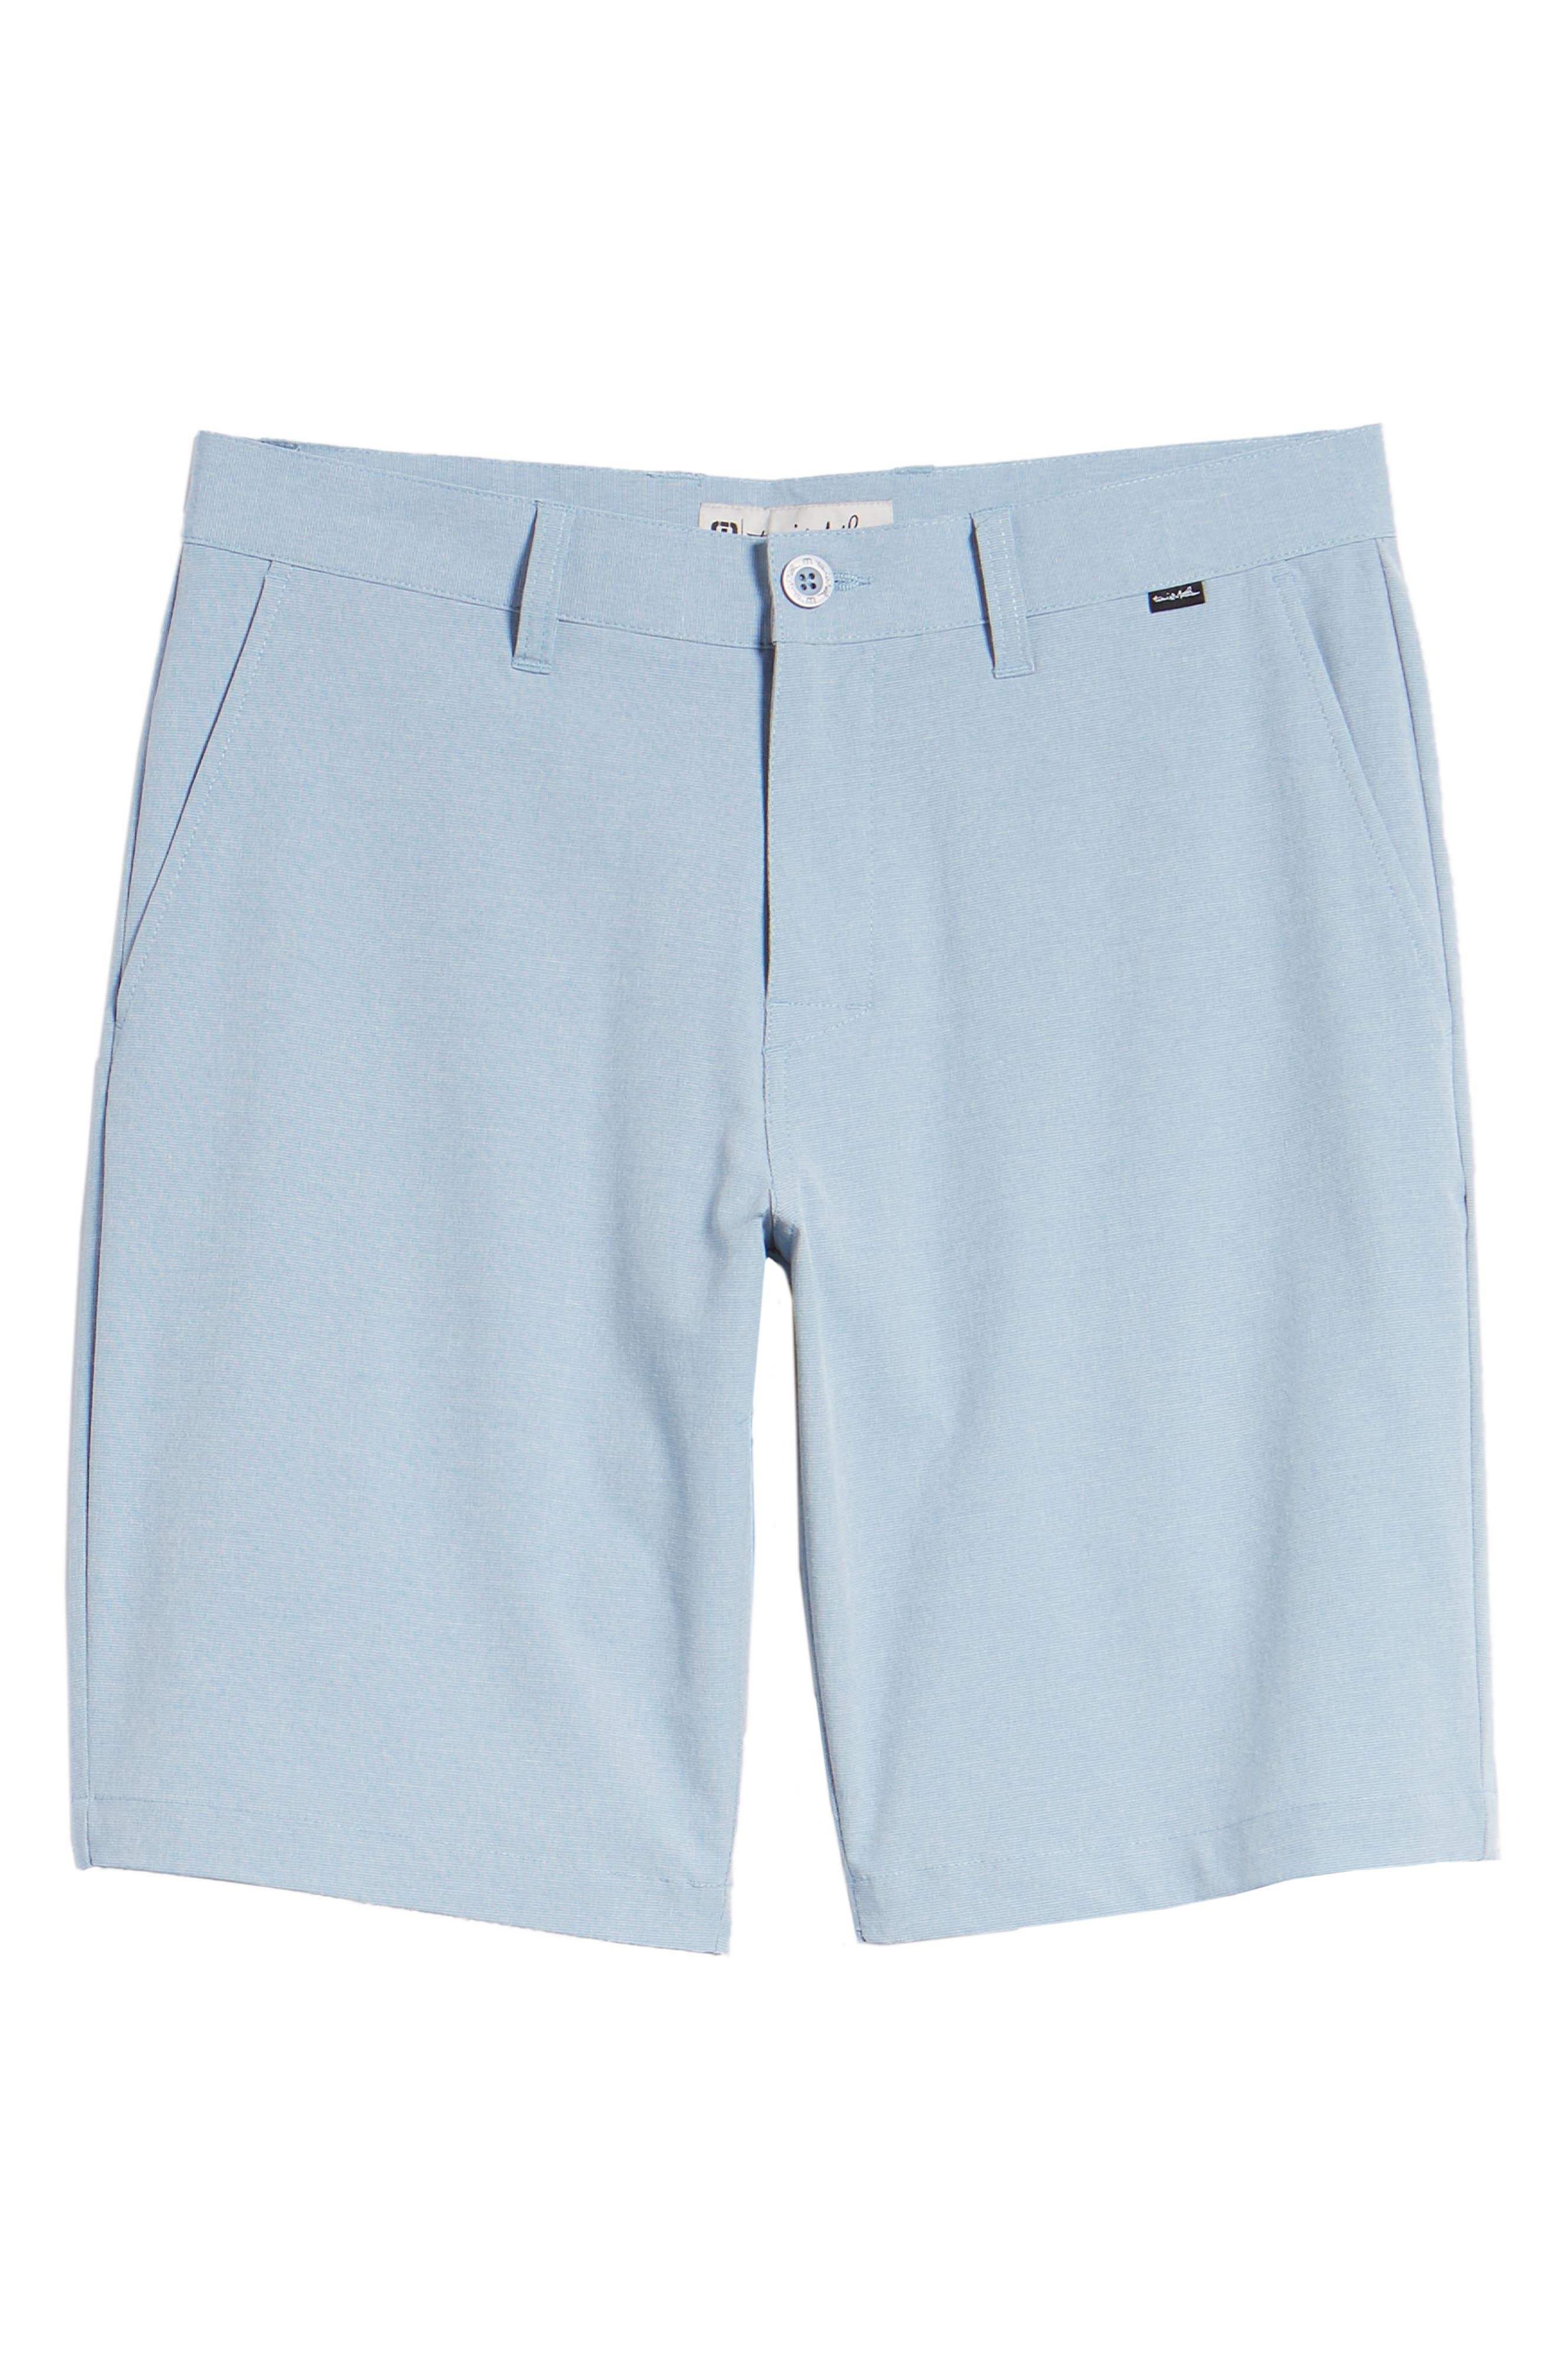 Beck Stretch Performance Shorts,                             Alternate thumbnail 6, color,                             Blue